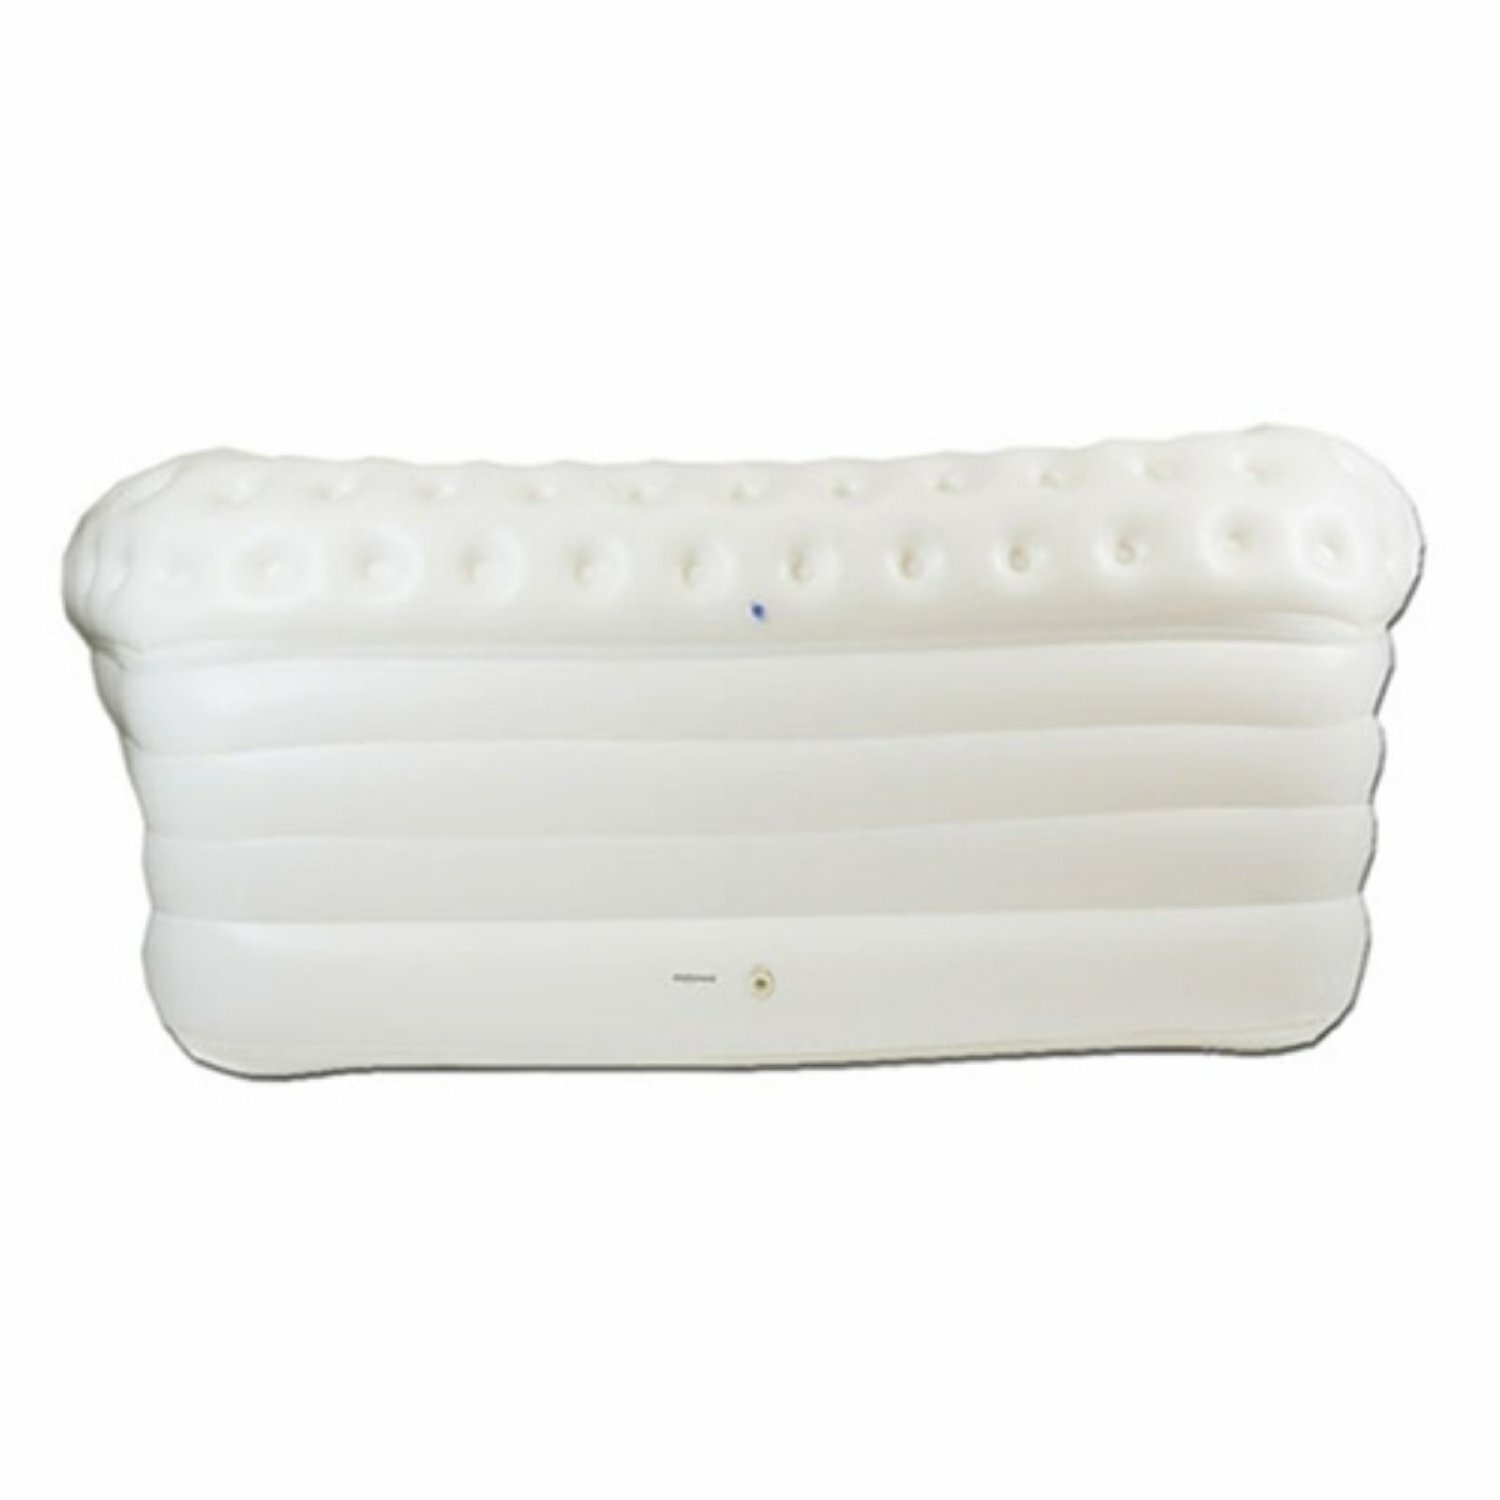 Inflatable Chesterfield Sofa Hire: Smart Air Beds Chesterfield 2 Person Inflatable Kids Sofa